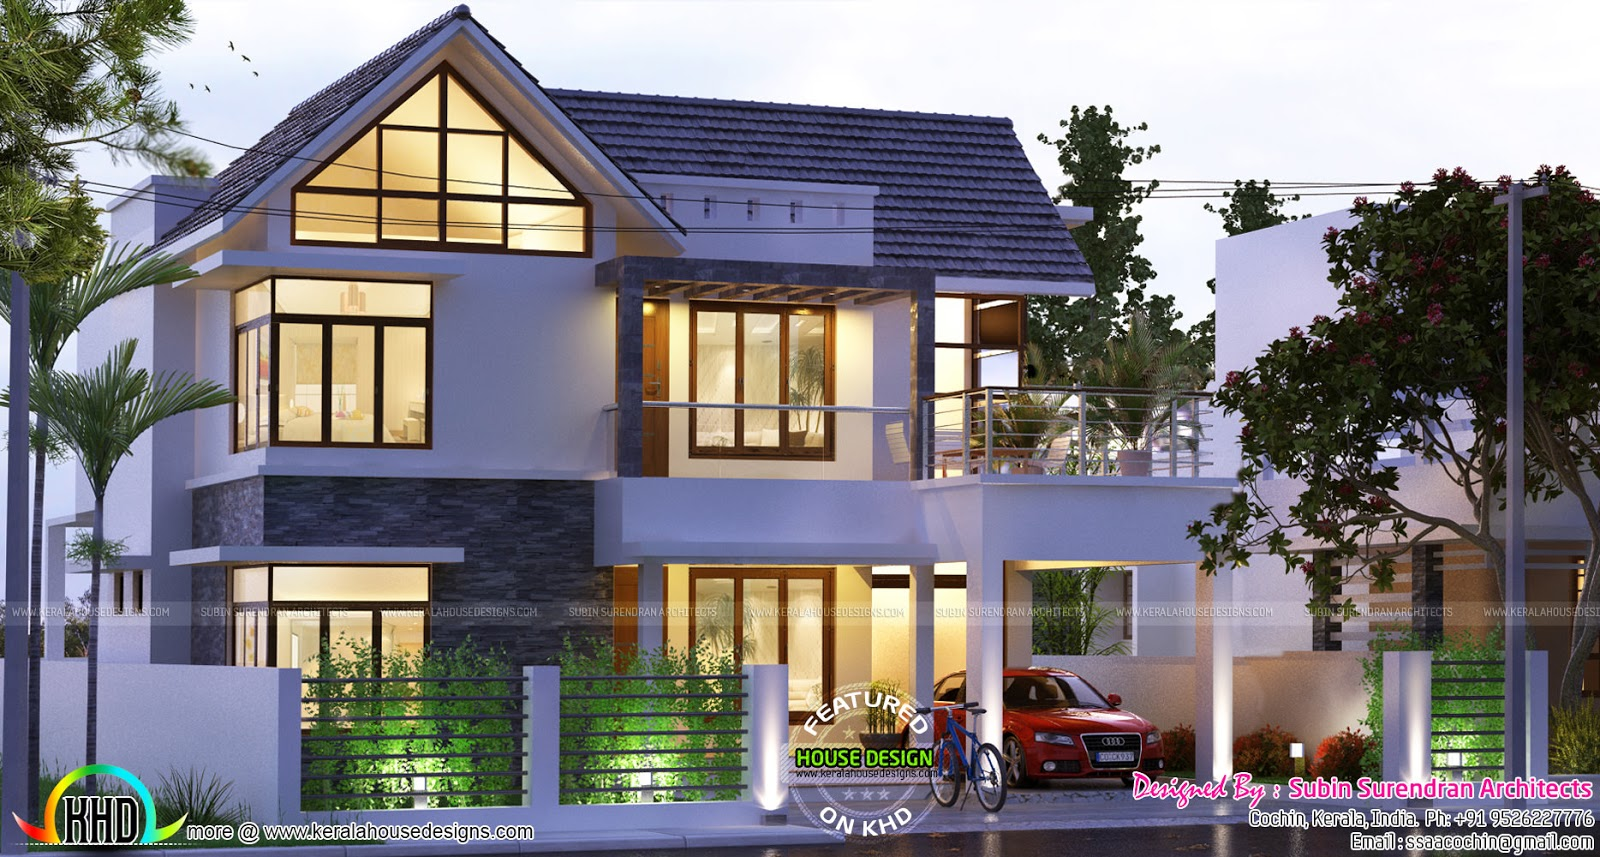 Square Feet Details. Total Area : 2200 Sq Ft. No. Of Bedrooms : 4. No. Of  Bathrooms : 4. Design Style : Sloping Roof